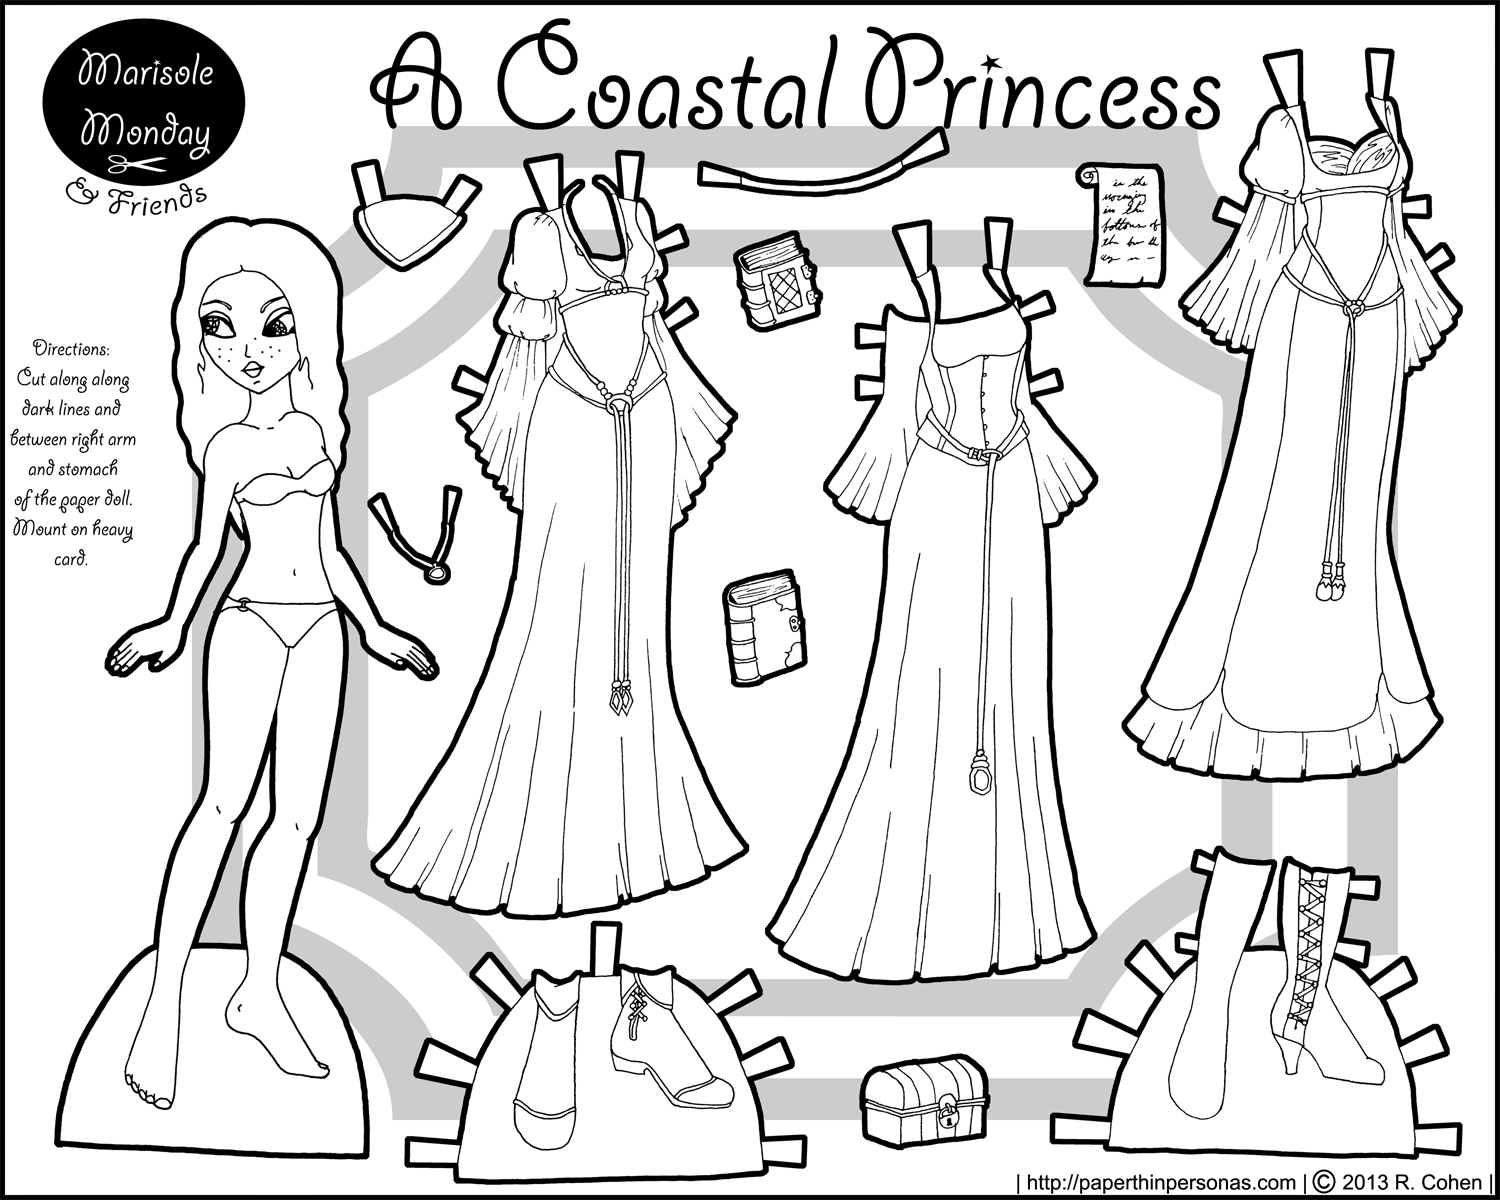 Marisole Monday Coastal Princess Paper Thin Personas Paper Princess Coloring Pages